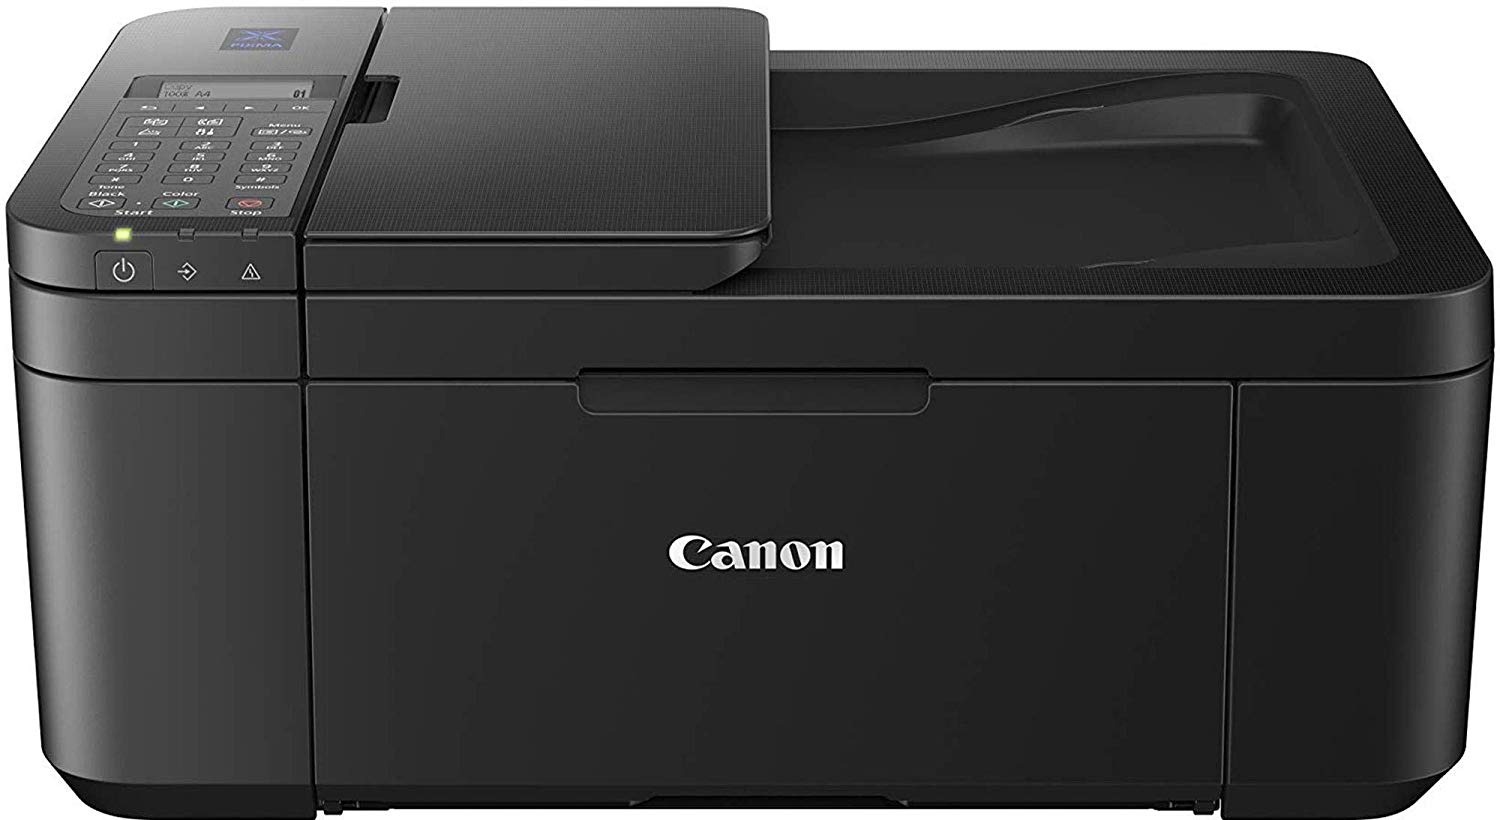 Canon E4270 All-in-One Ink Efficient WiFi Printer